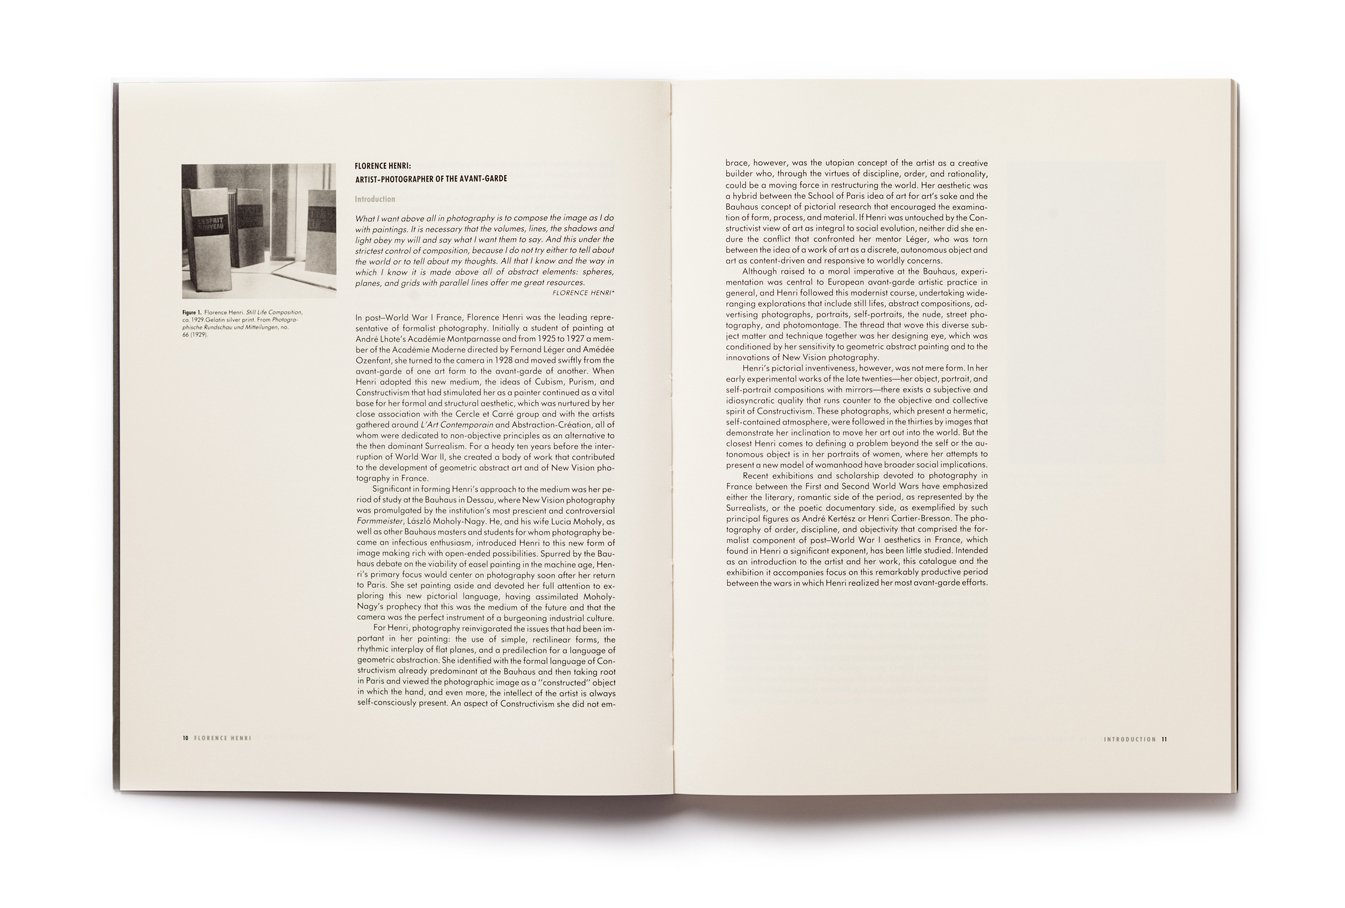 Florence Henri: Artist-Photographer of the Avant Garde, pages 10-11